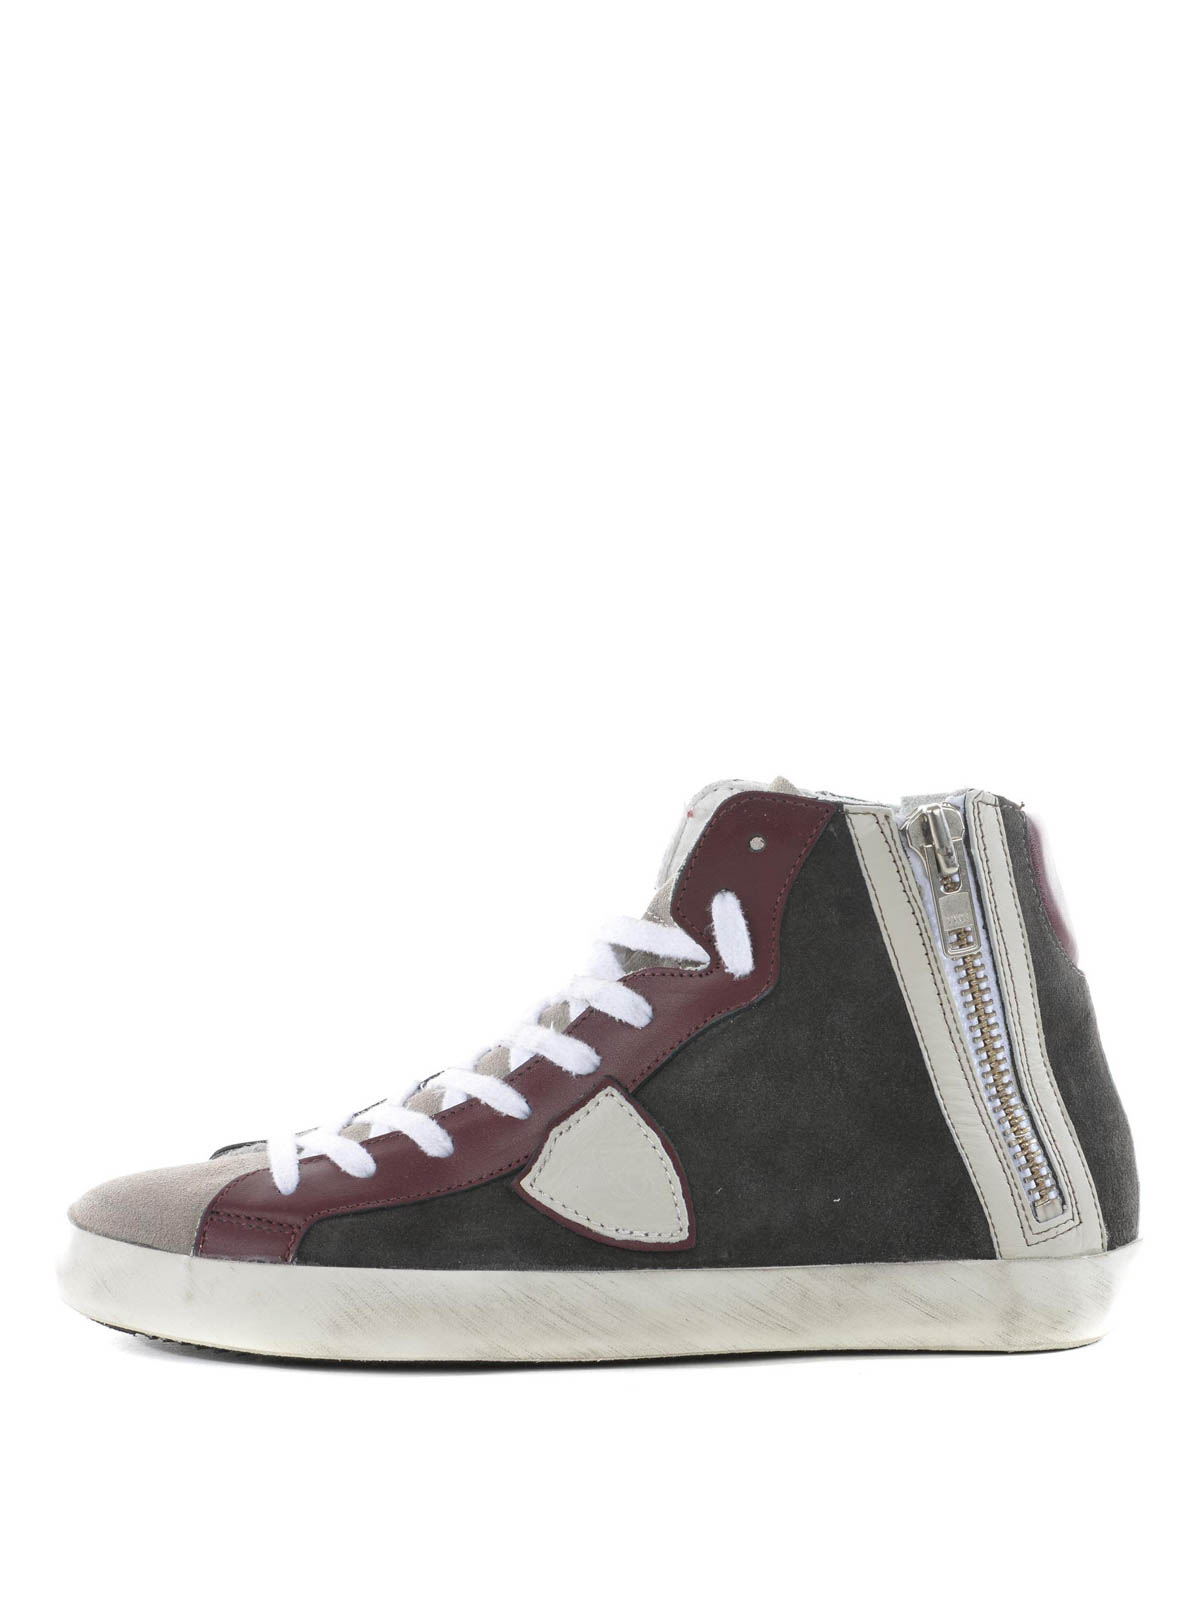 high top suede sneakers by philippe model trainers ikrix. Black Bedroom Furniture Sets. Home Design Ideas